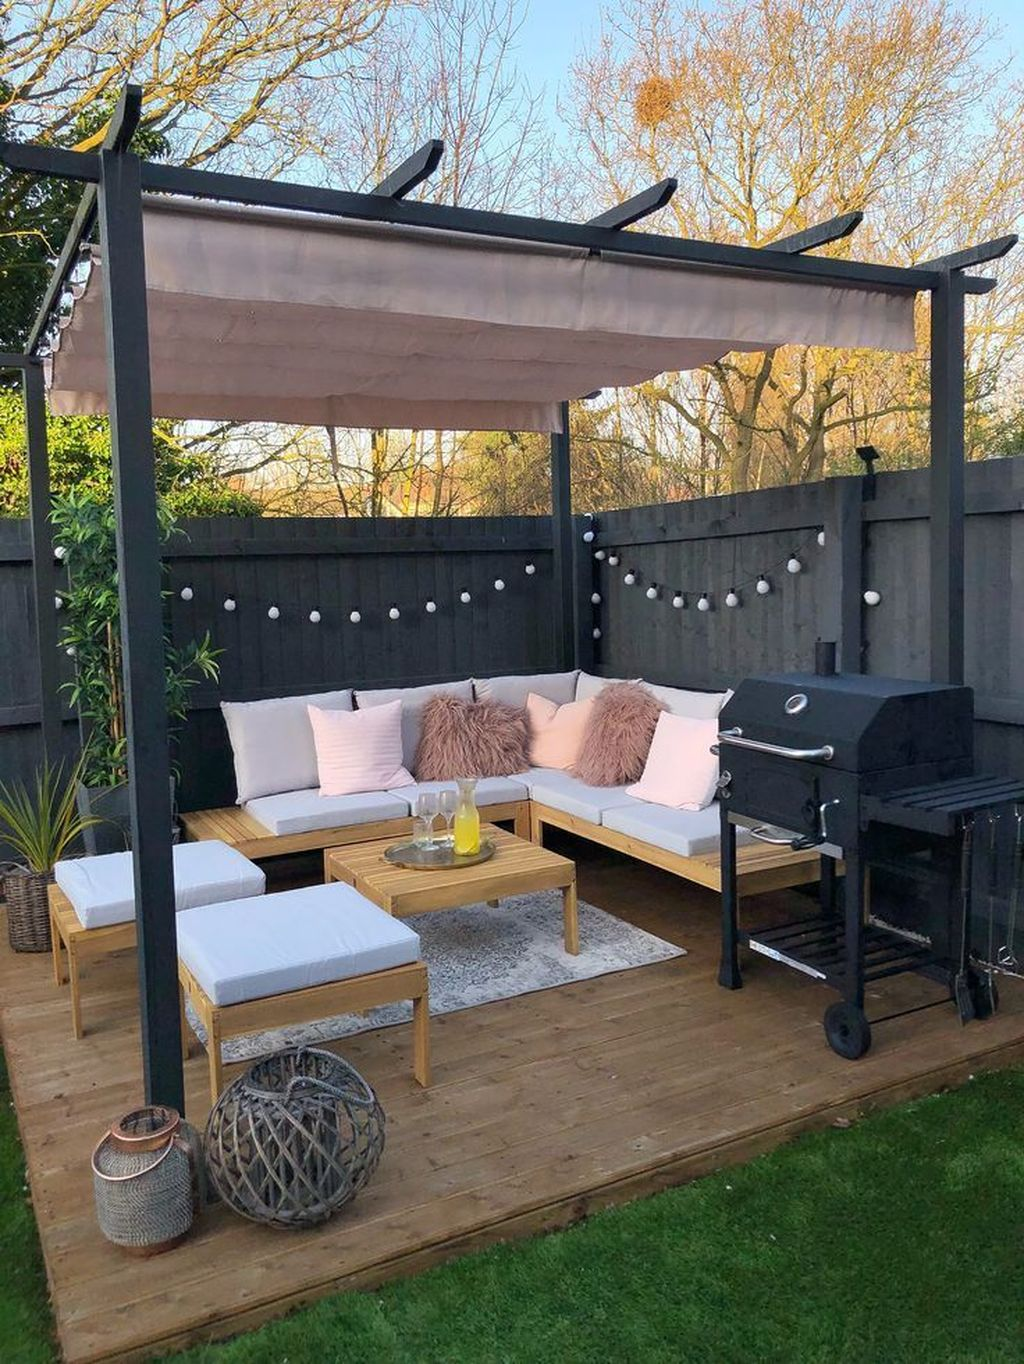 Admirable Cozy Patio Design Ideas To Relaxing On A Sunny Day 29